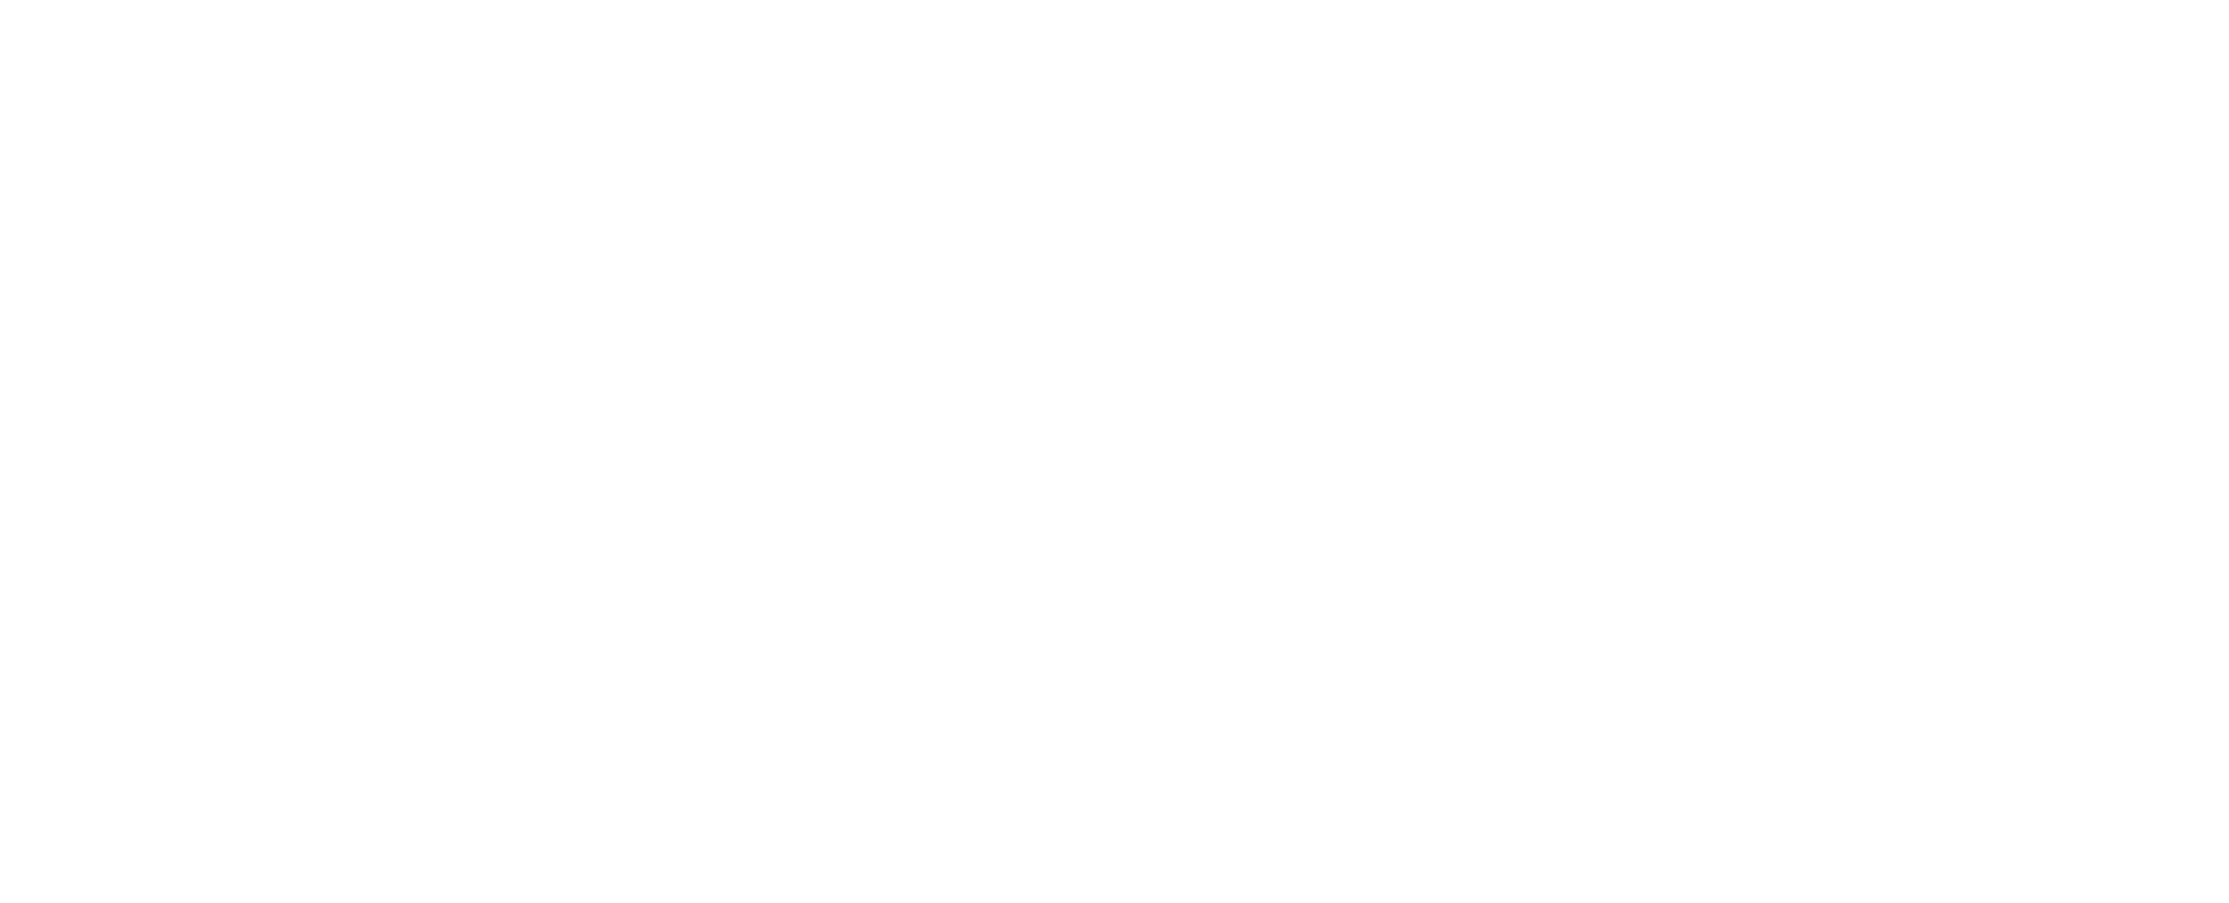 Margaritaville Beach Resort Fort Myers Beach Logo